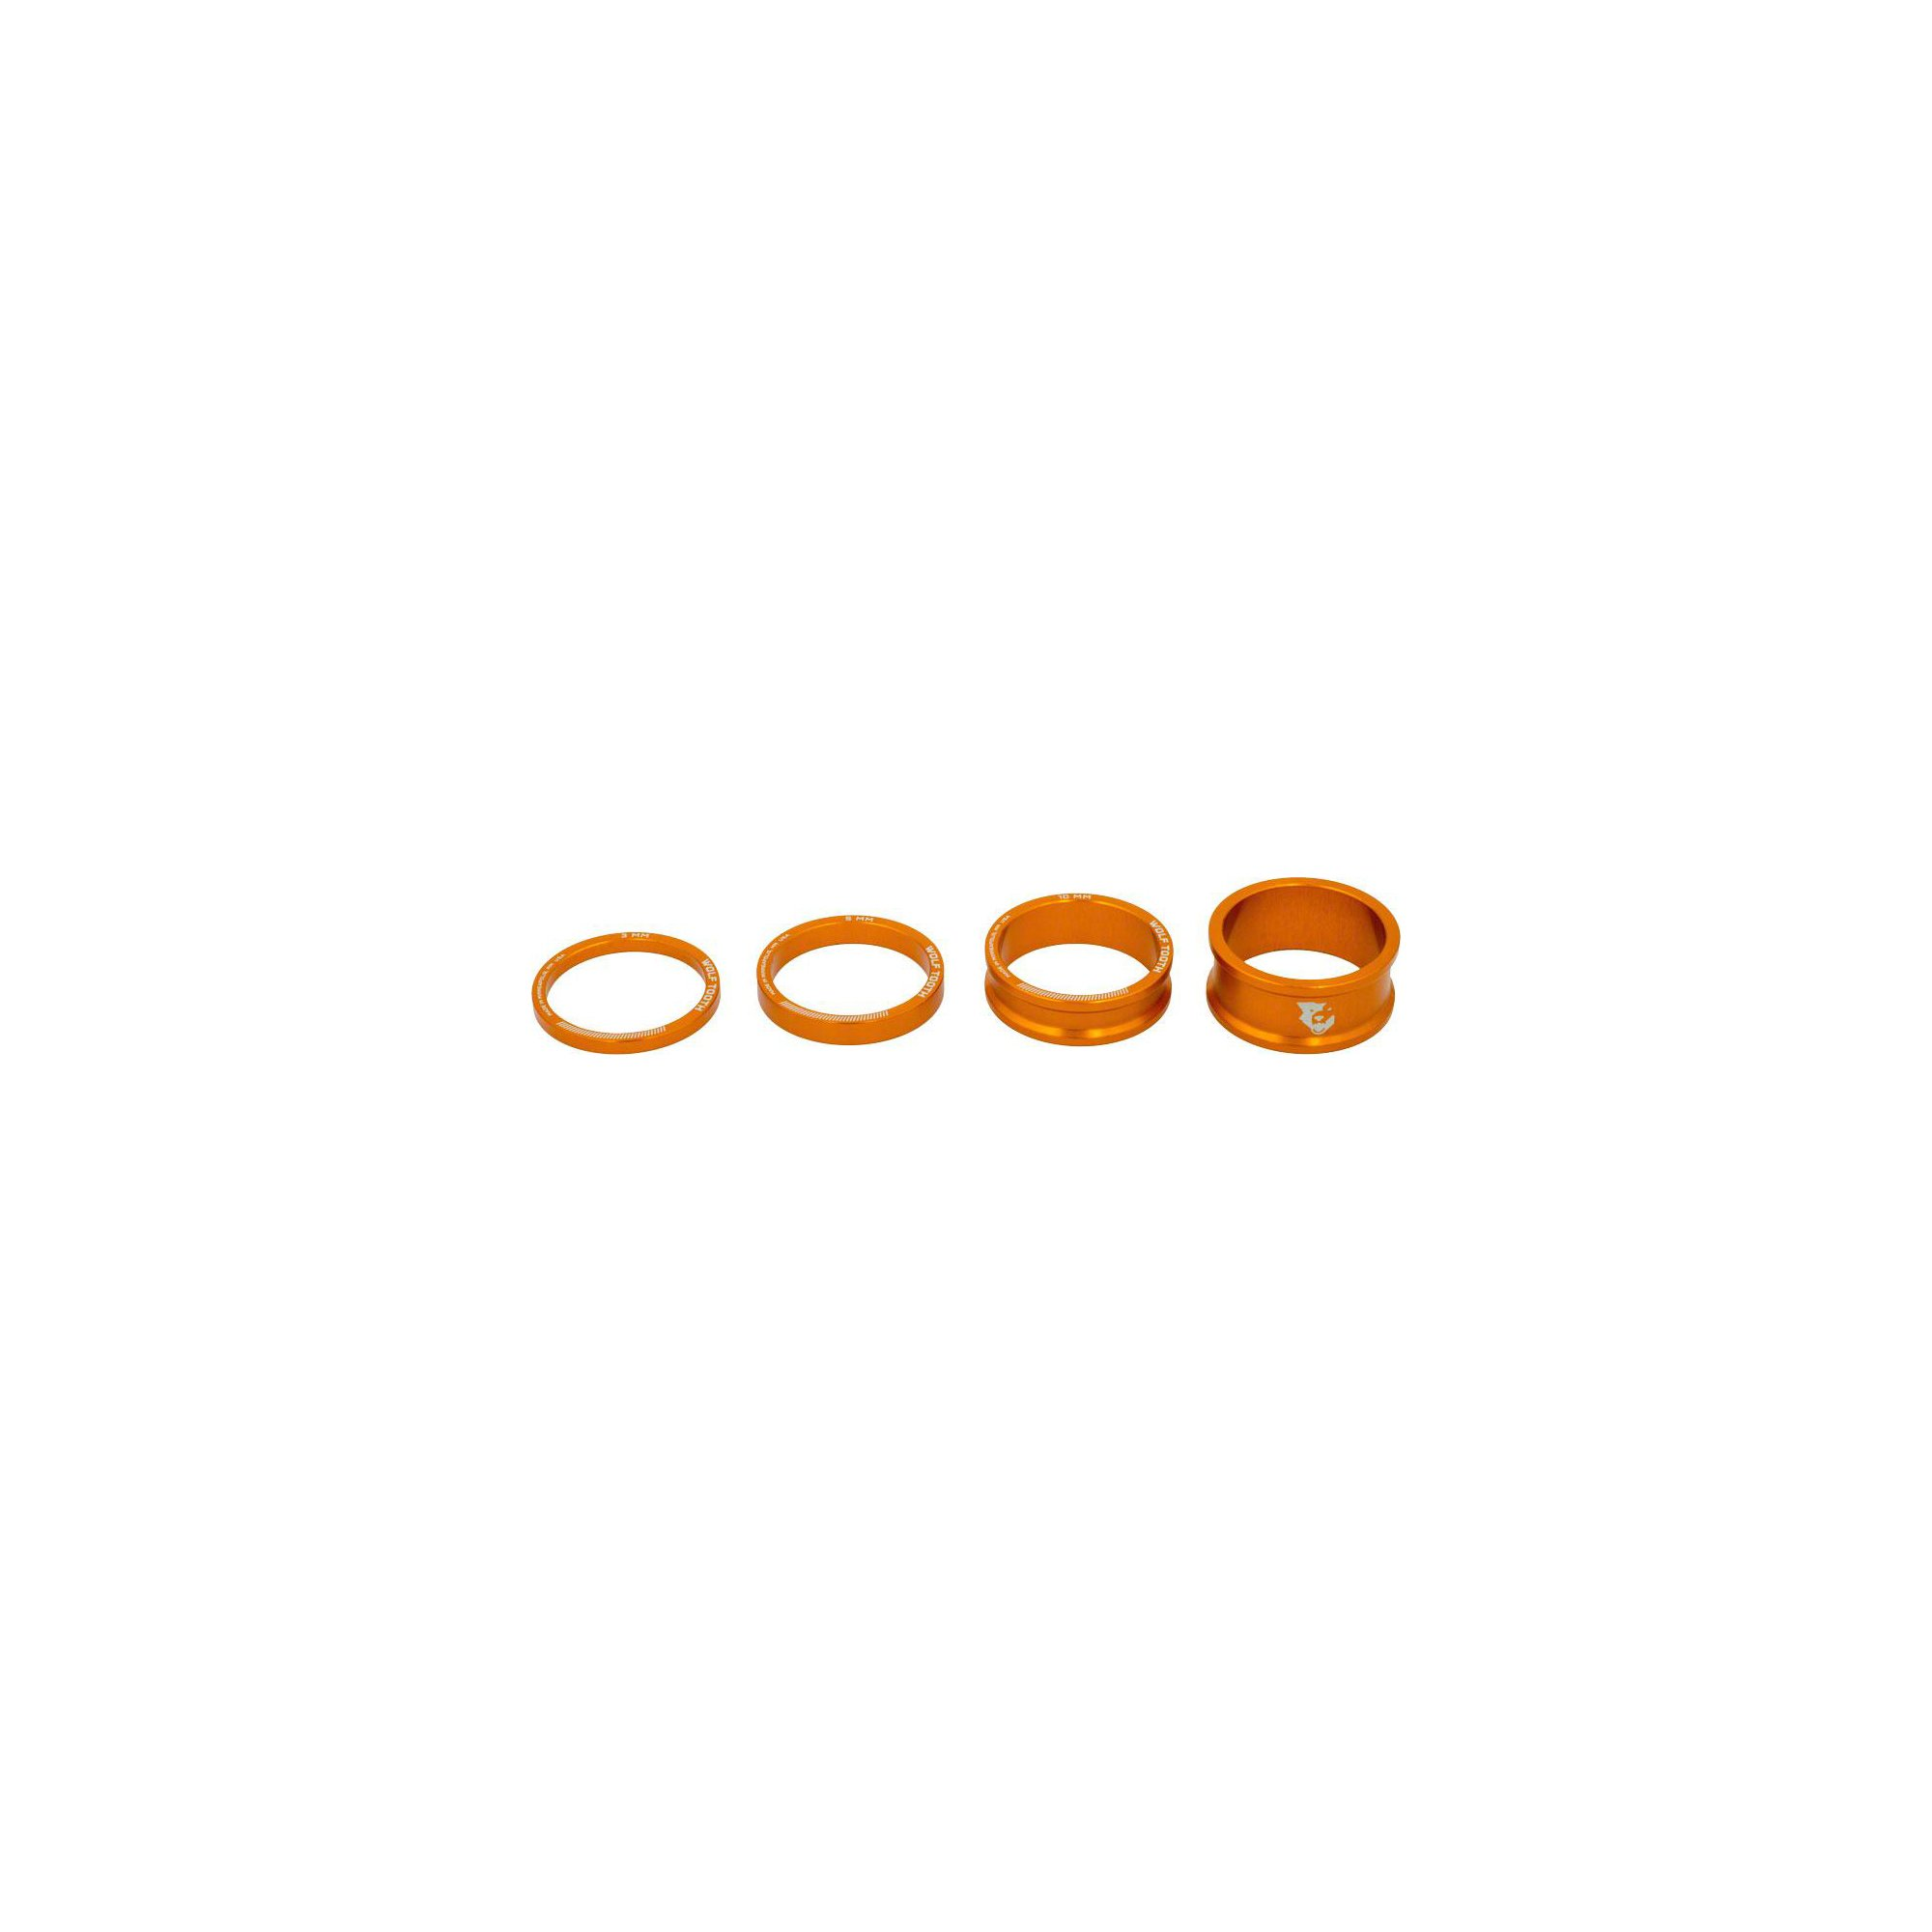 Wolf Tooth Components Headset Spacer Kit Orange, One Size by Wolf Tooth Components